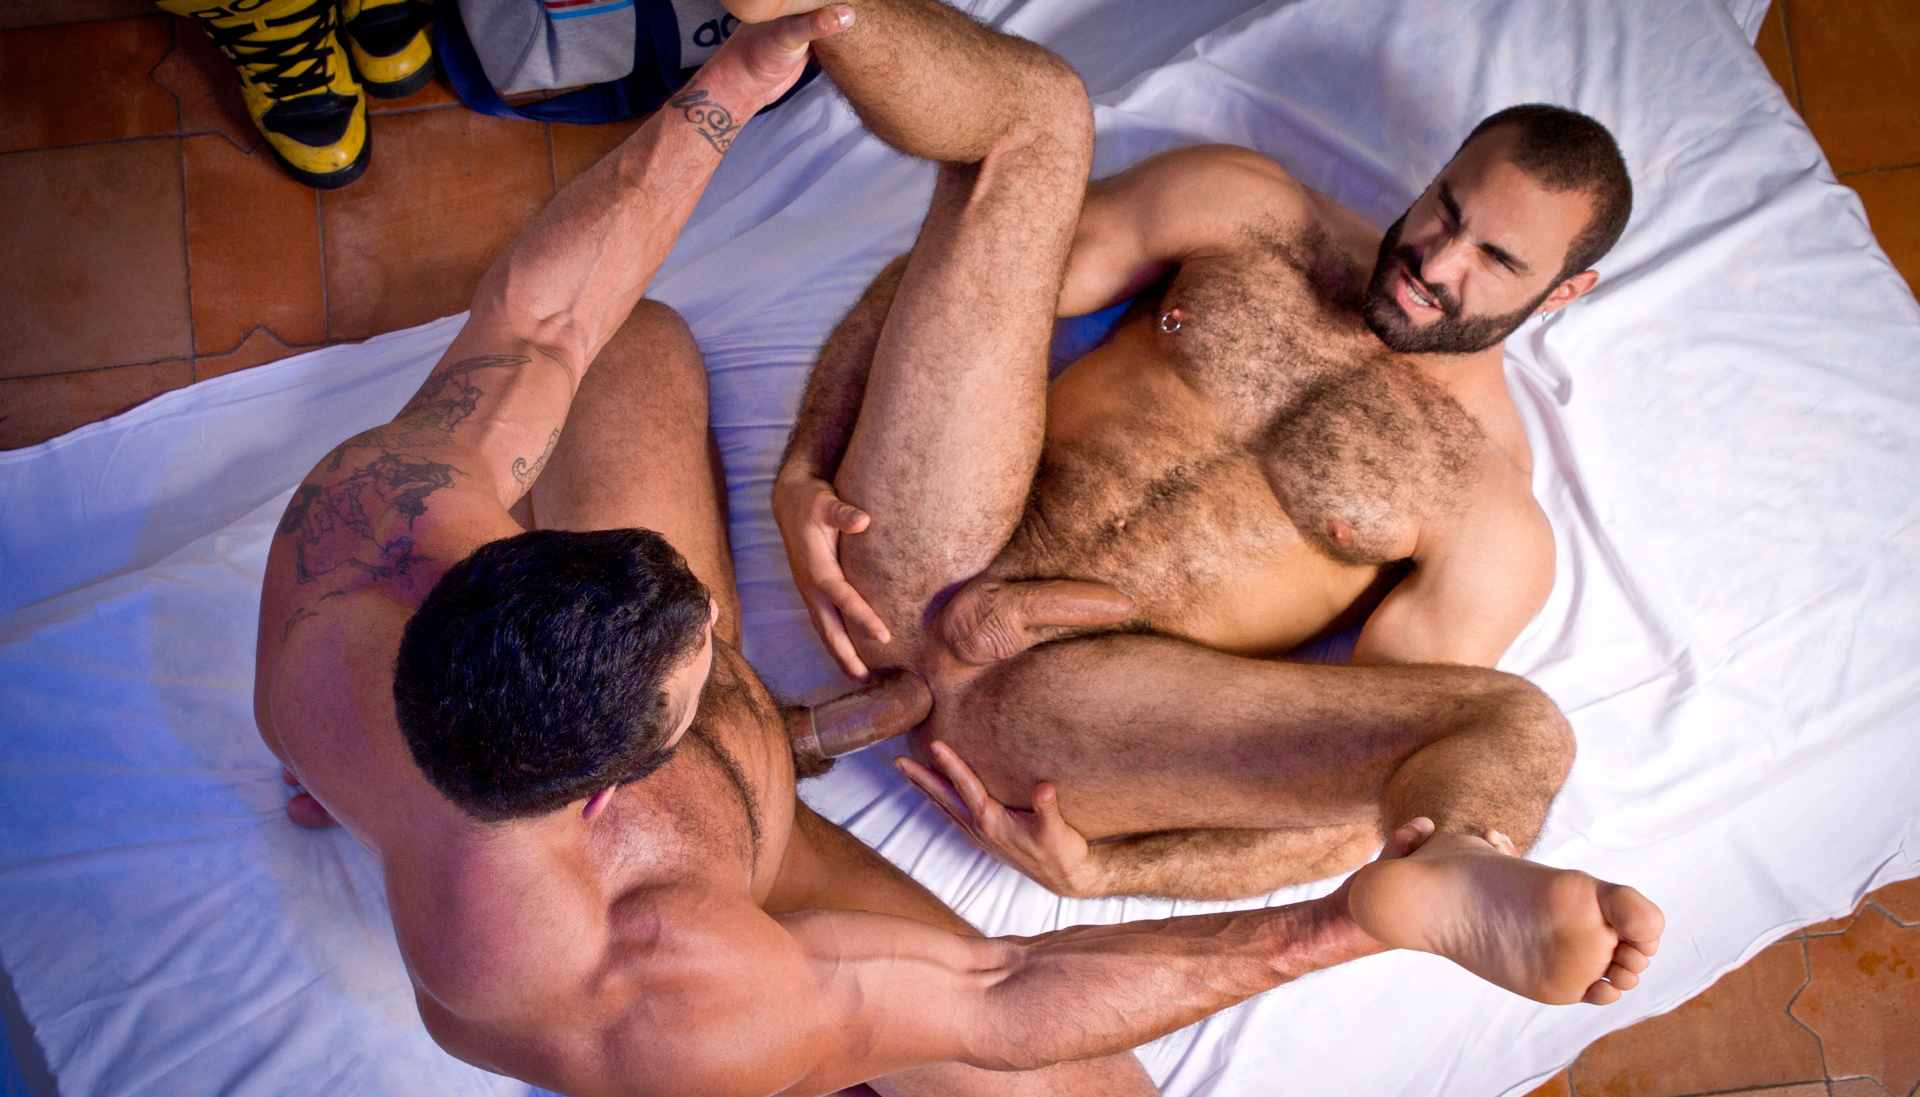 rogan richards gay porno